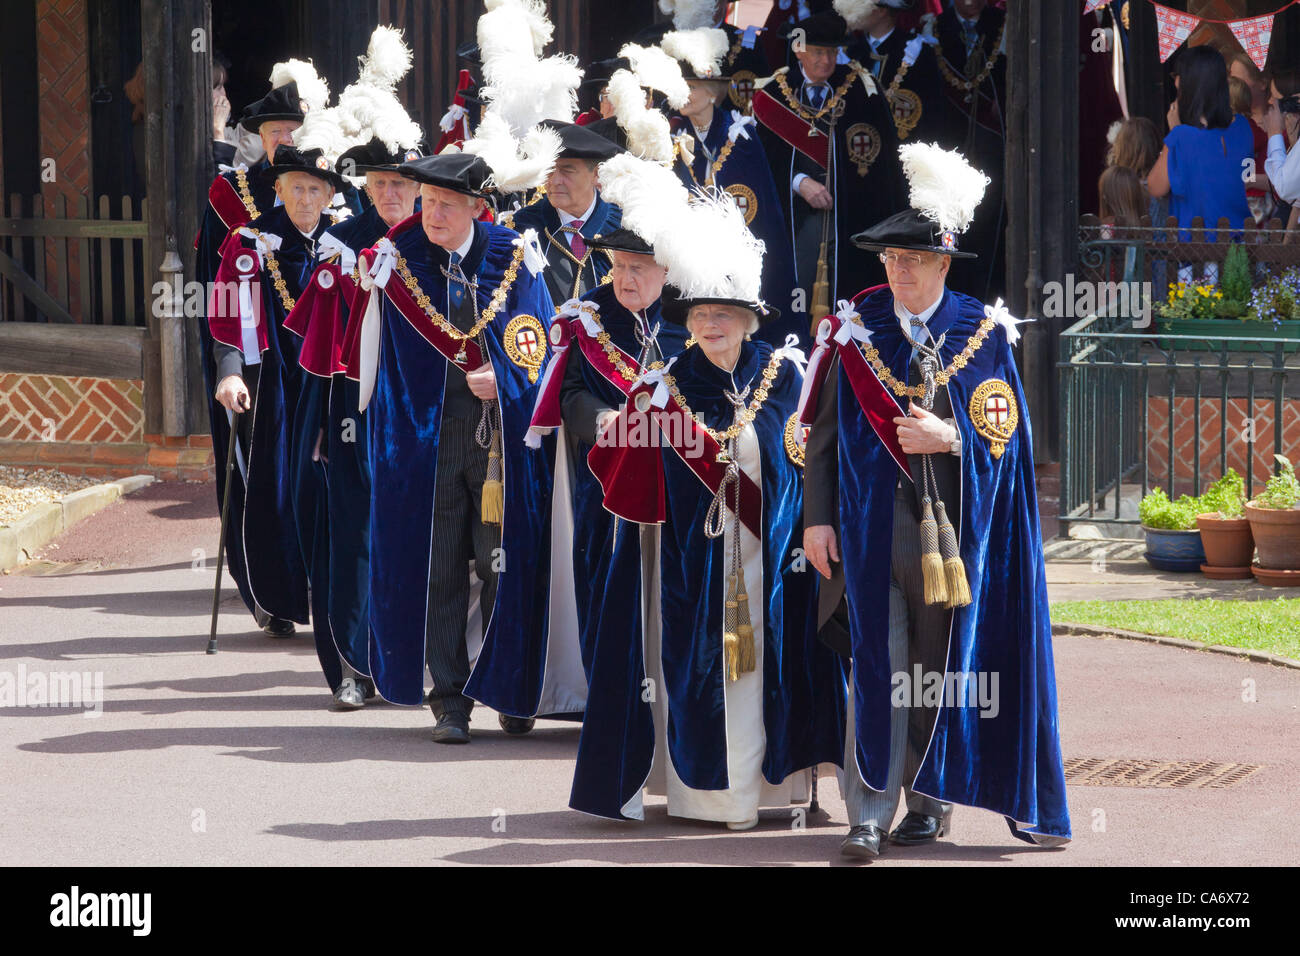 Knights Of The Garter Stock Photos & Knights Of The Garter Stock ...